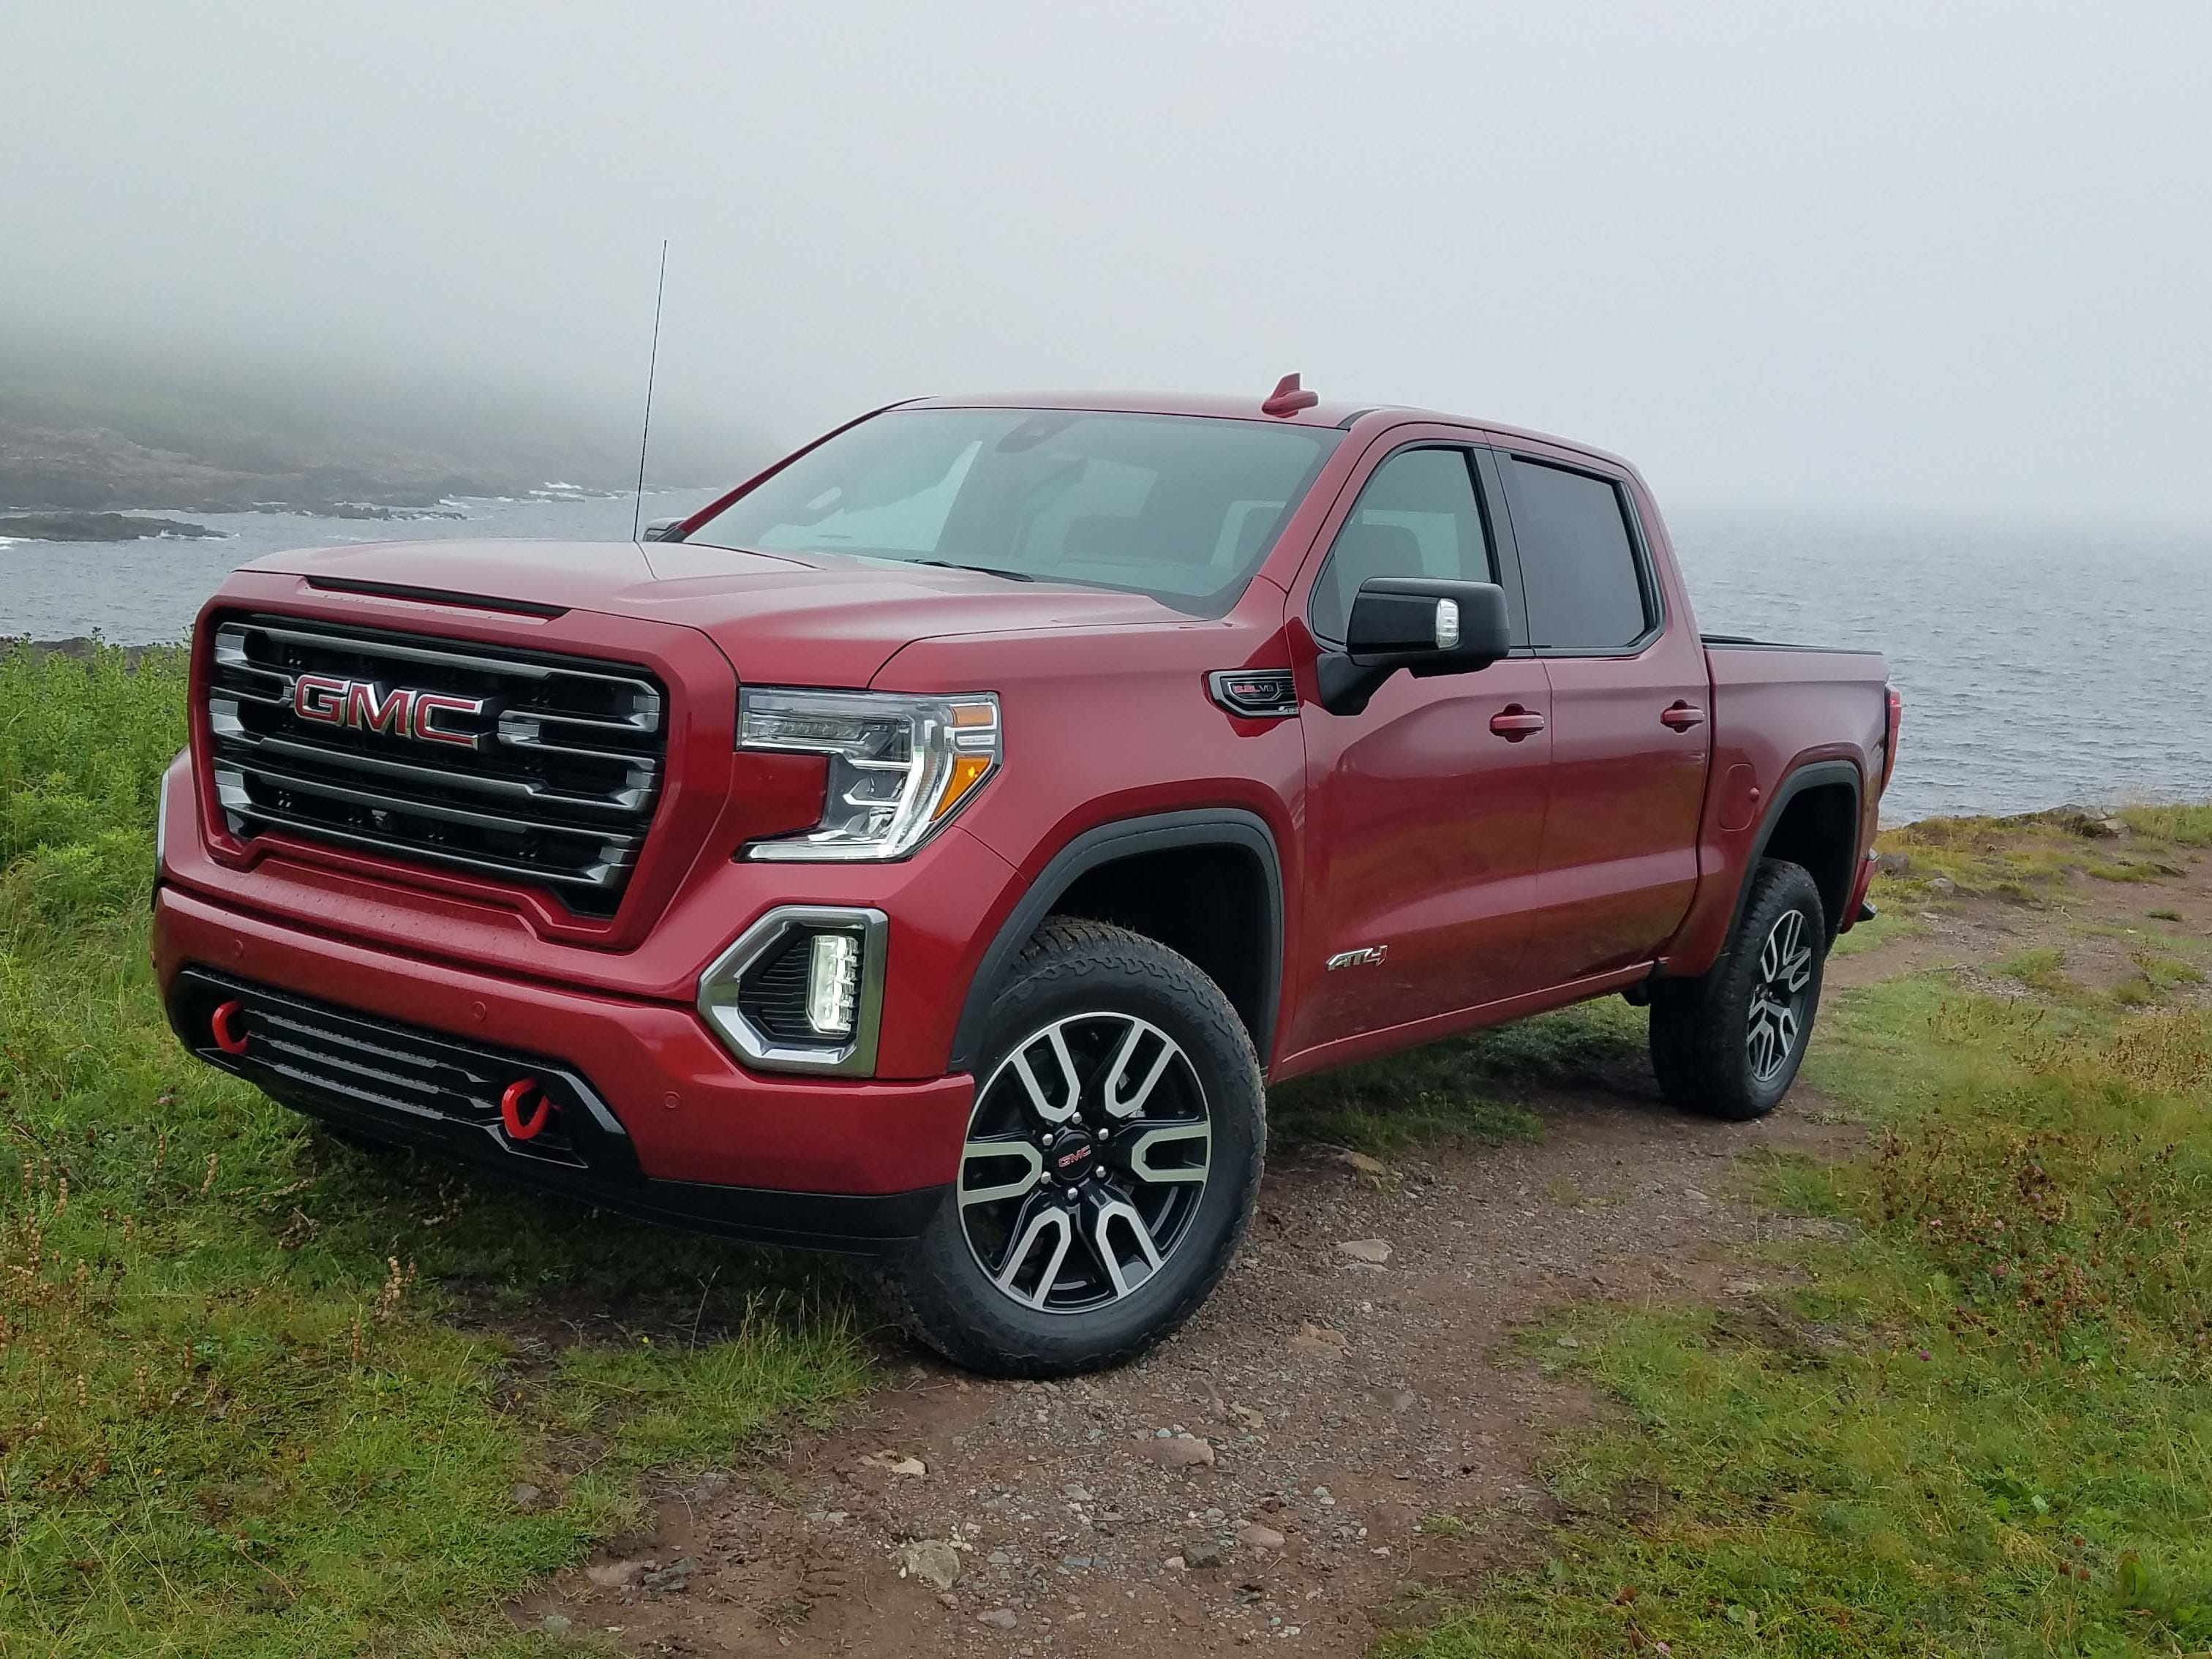 New for 2019, the GMC Sierra gets a premium off-roader, the AT4 with 18-inch wheels, a 2-inch lift, and choice of 5.3-liter and 6.2-liter V-8s.